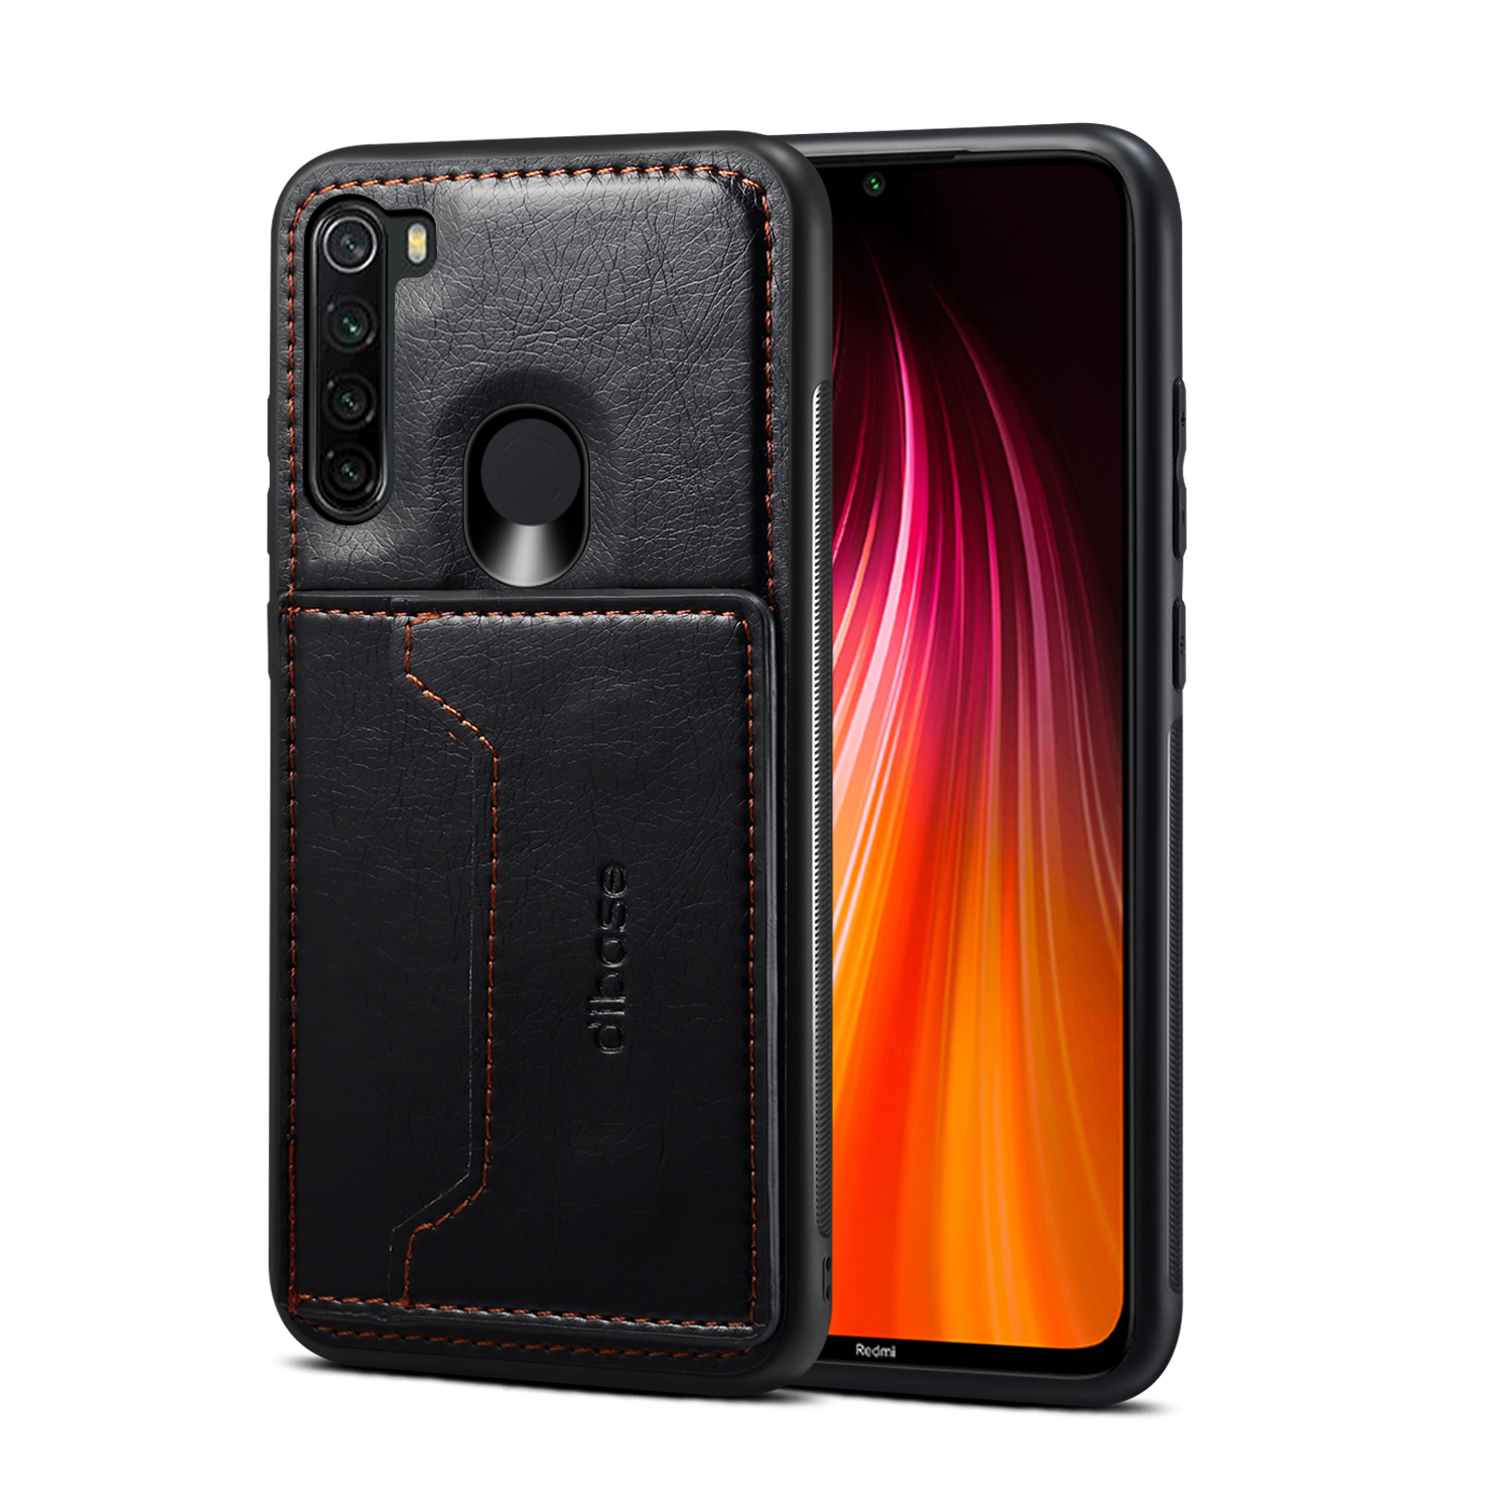 For Red Mi NOTE 8/8 Pro Cellphone Smart Shell 2-in-1 Textured PU Leather Card Holder Stand-viewing Overall Protection Case black